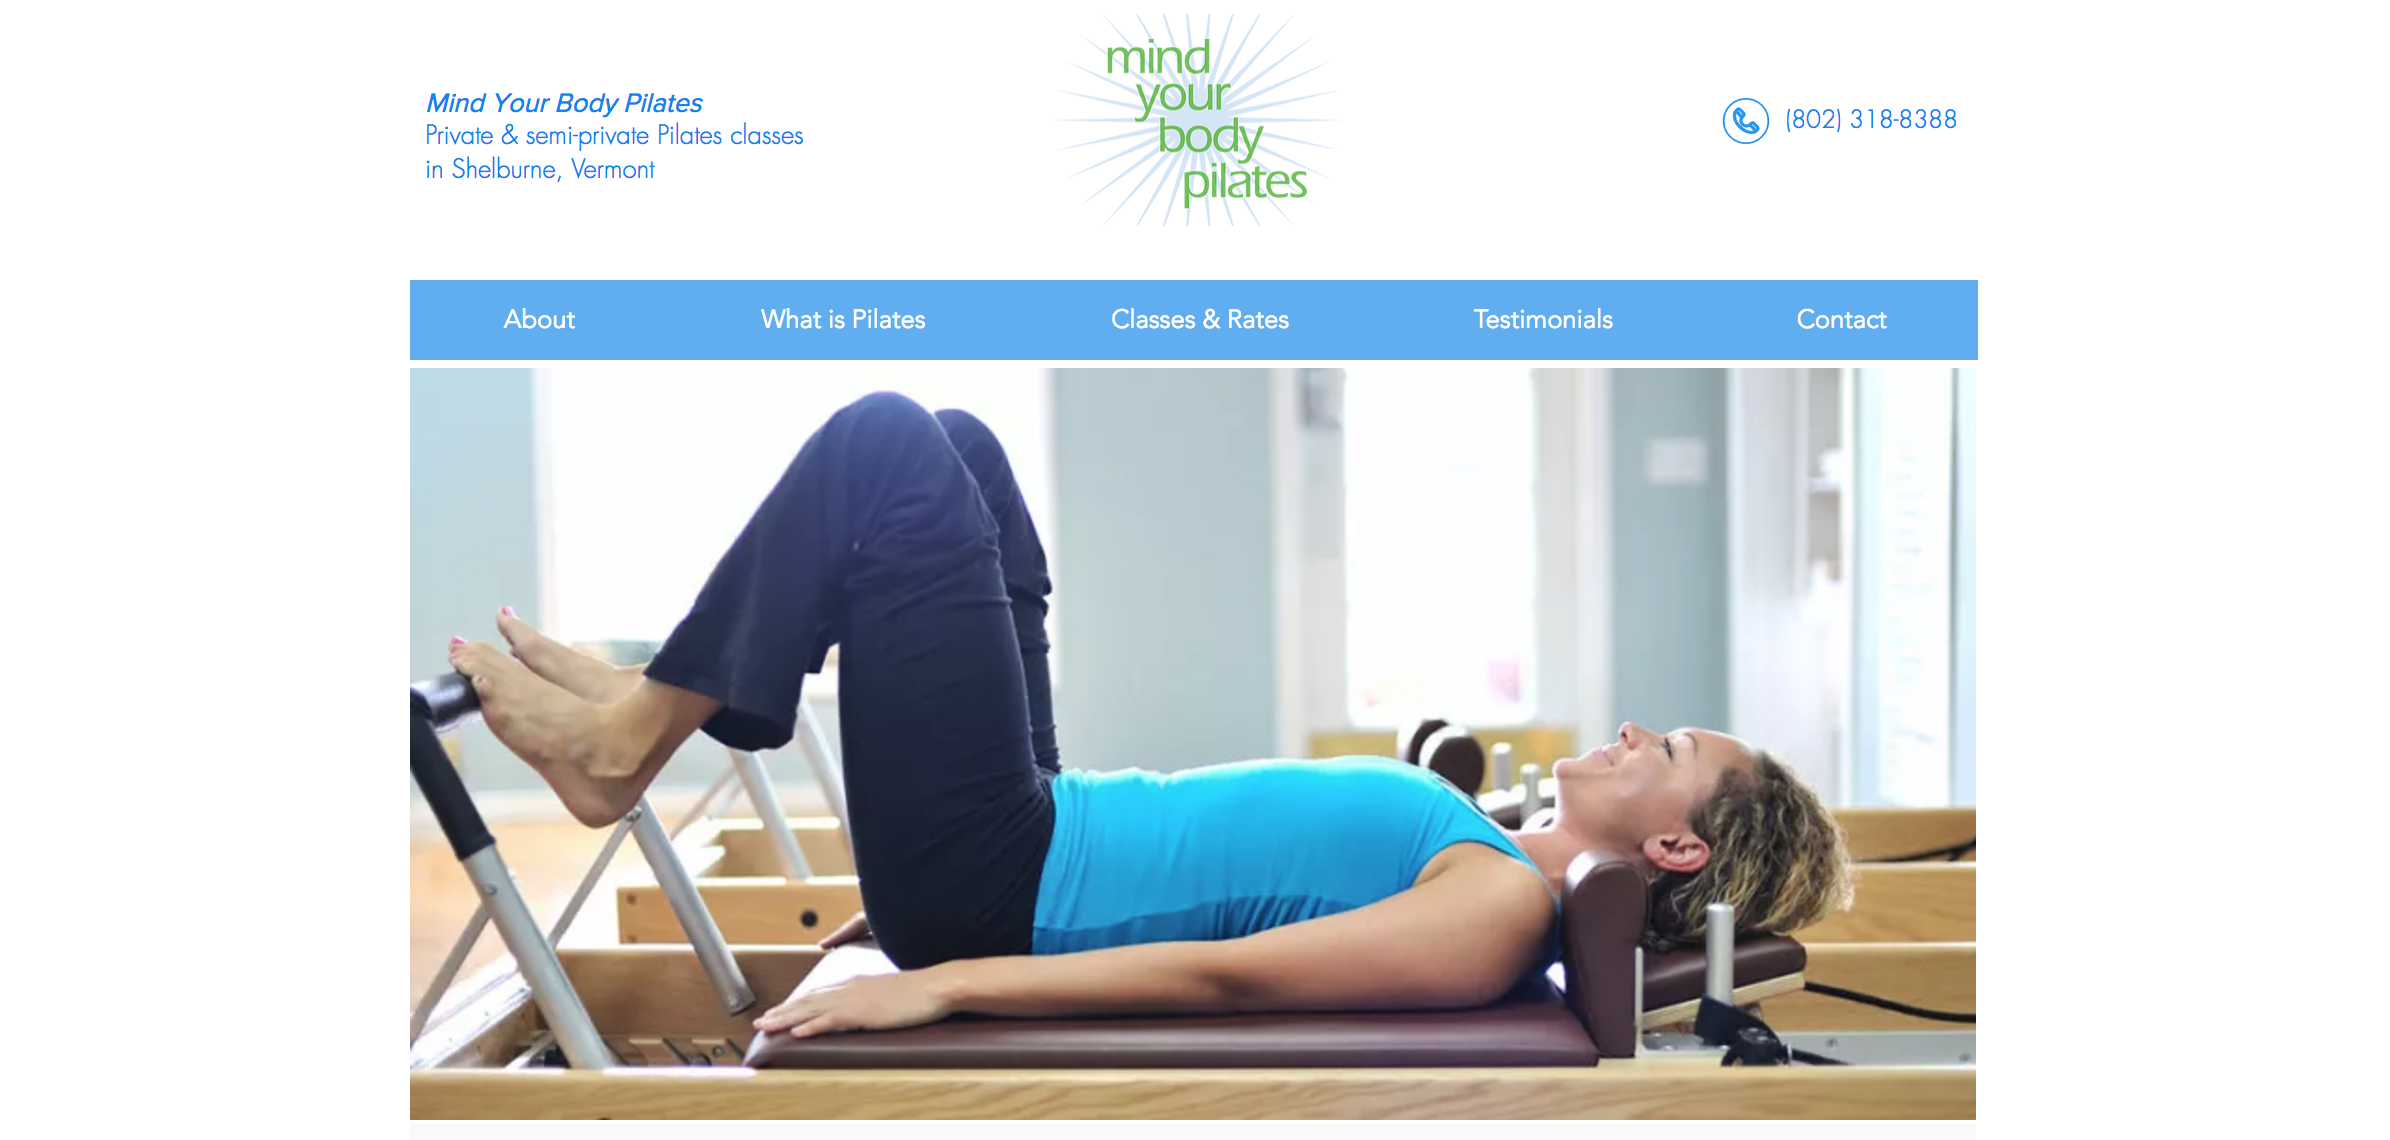 Mind Your Body Pilates | Pilates Classes in Shelburne, Vermont